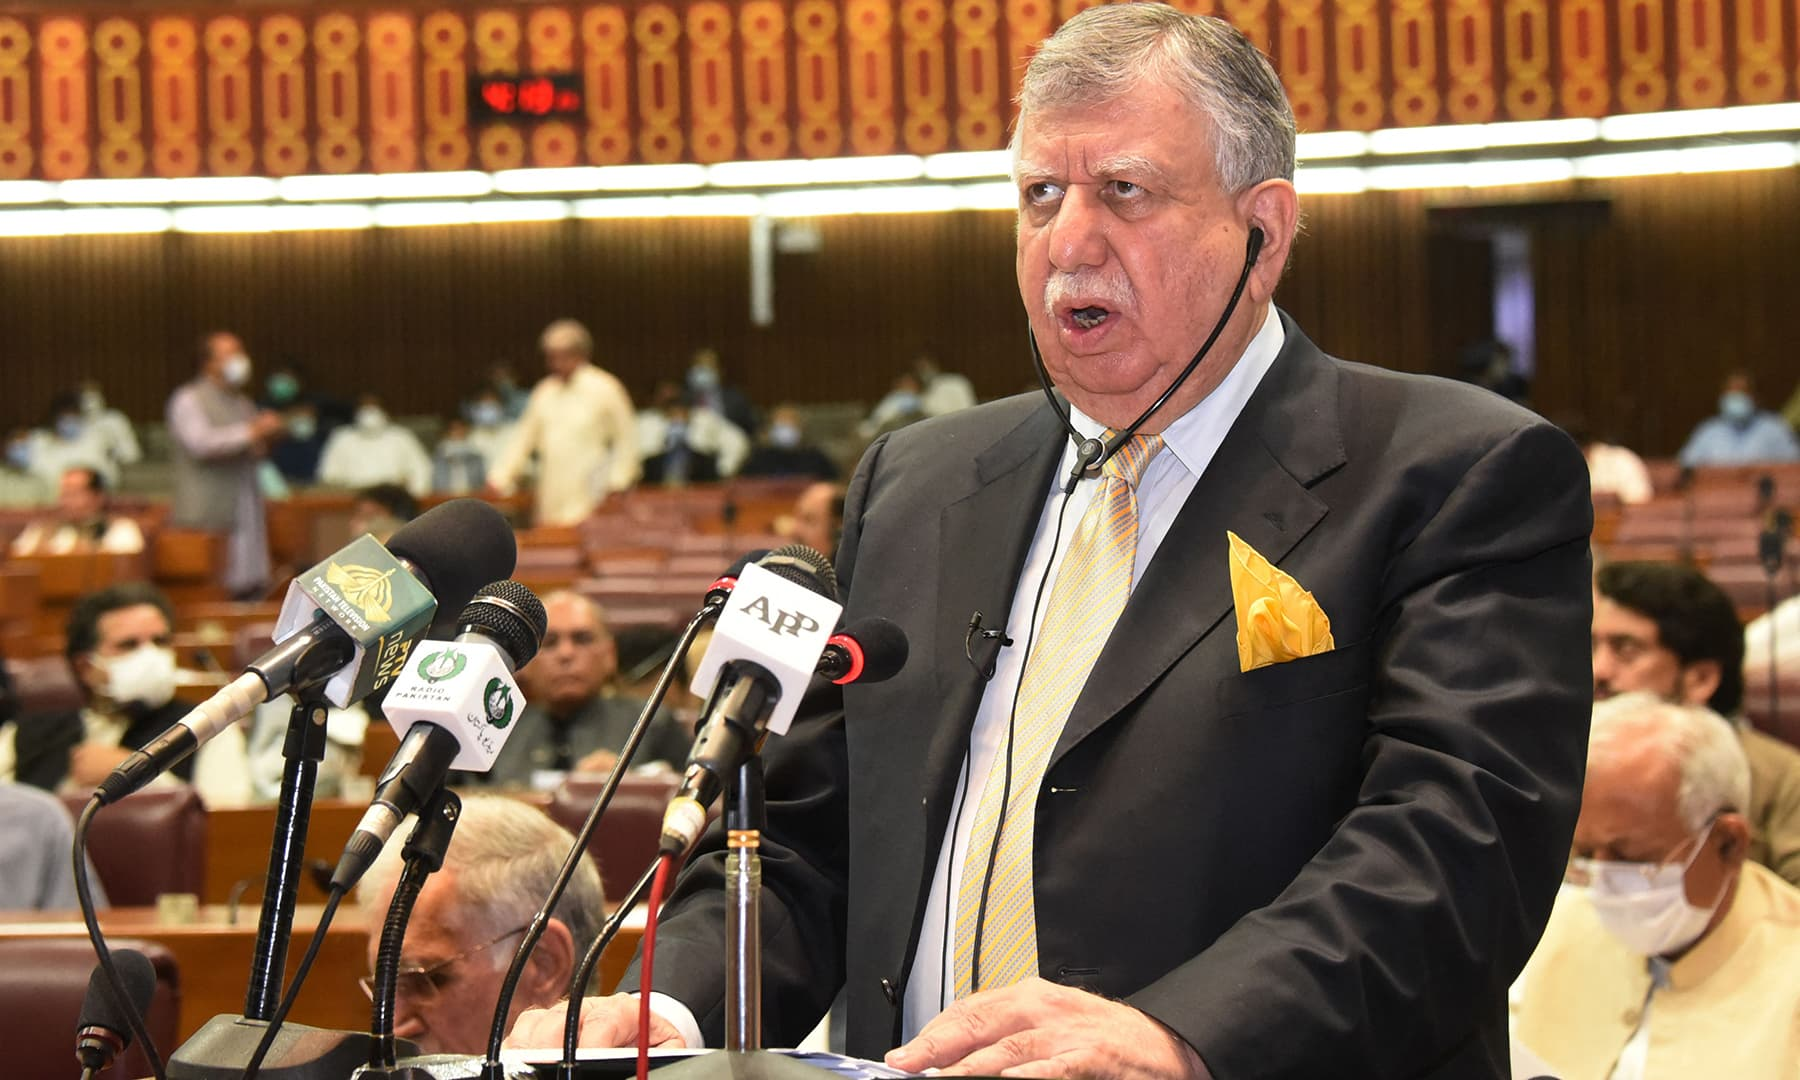 Finance Minister Shaukat Tarin presents the annual fiscal budget at the National Assembly in Islamabad. — Photo: National Assembly/AFP